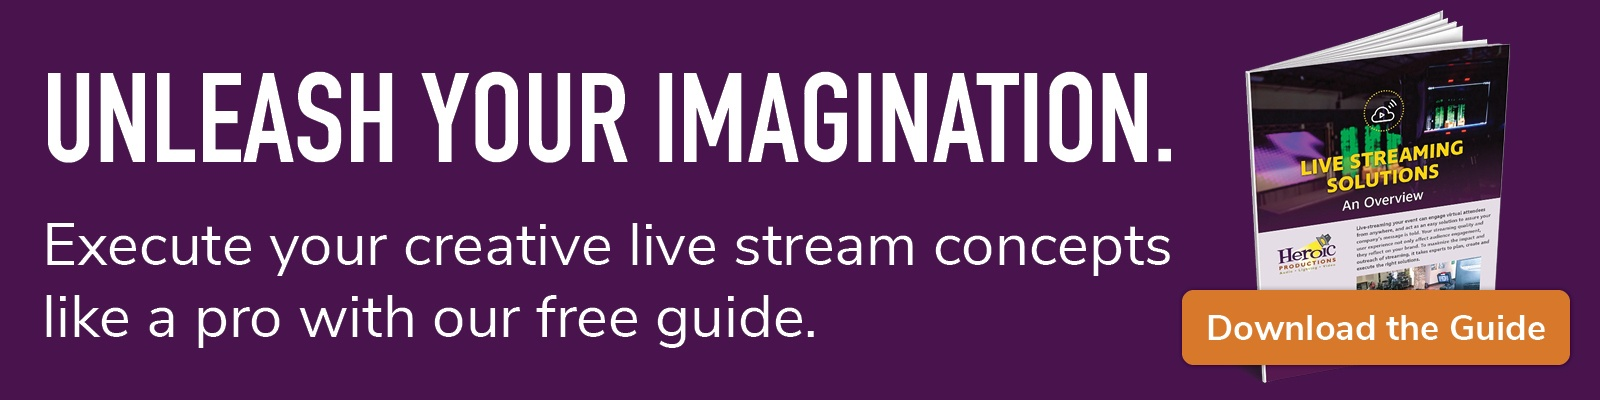 Unleash Your Imagination; download the guide